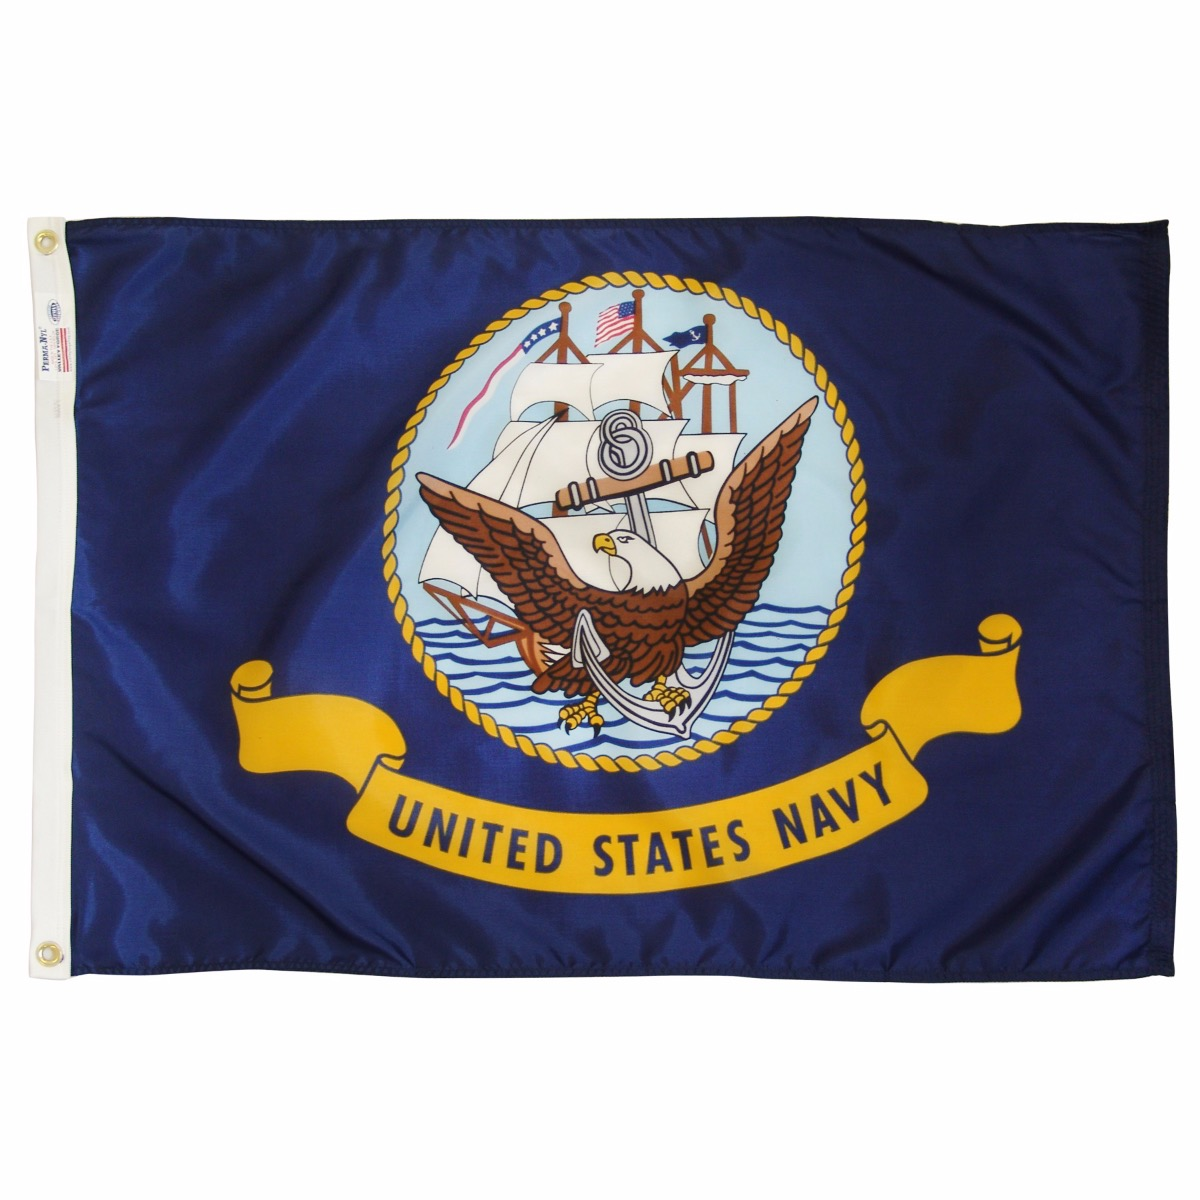 Nylon Navy Flag - 3 ft X 5 ft